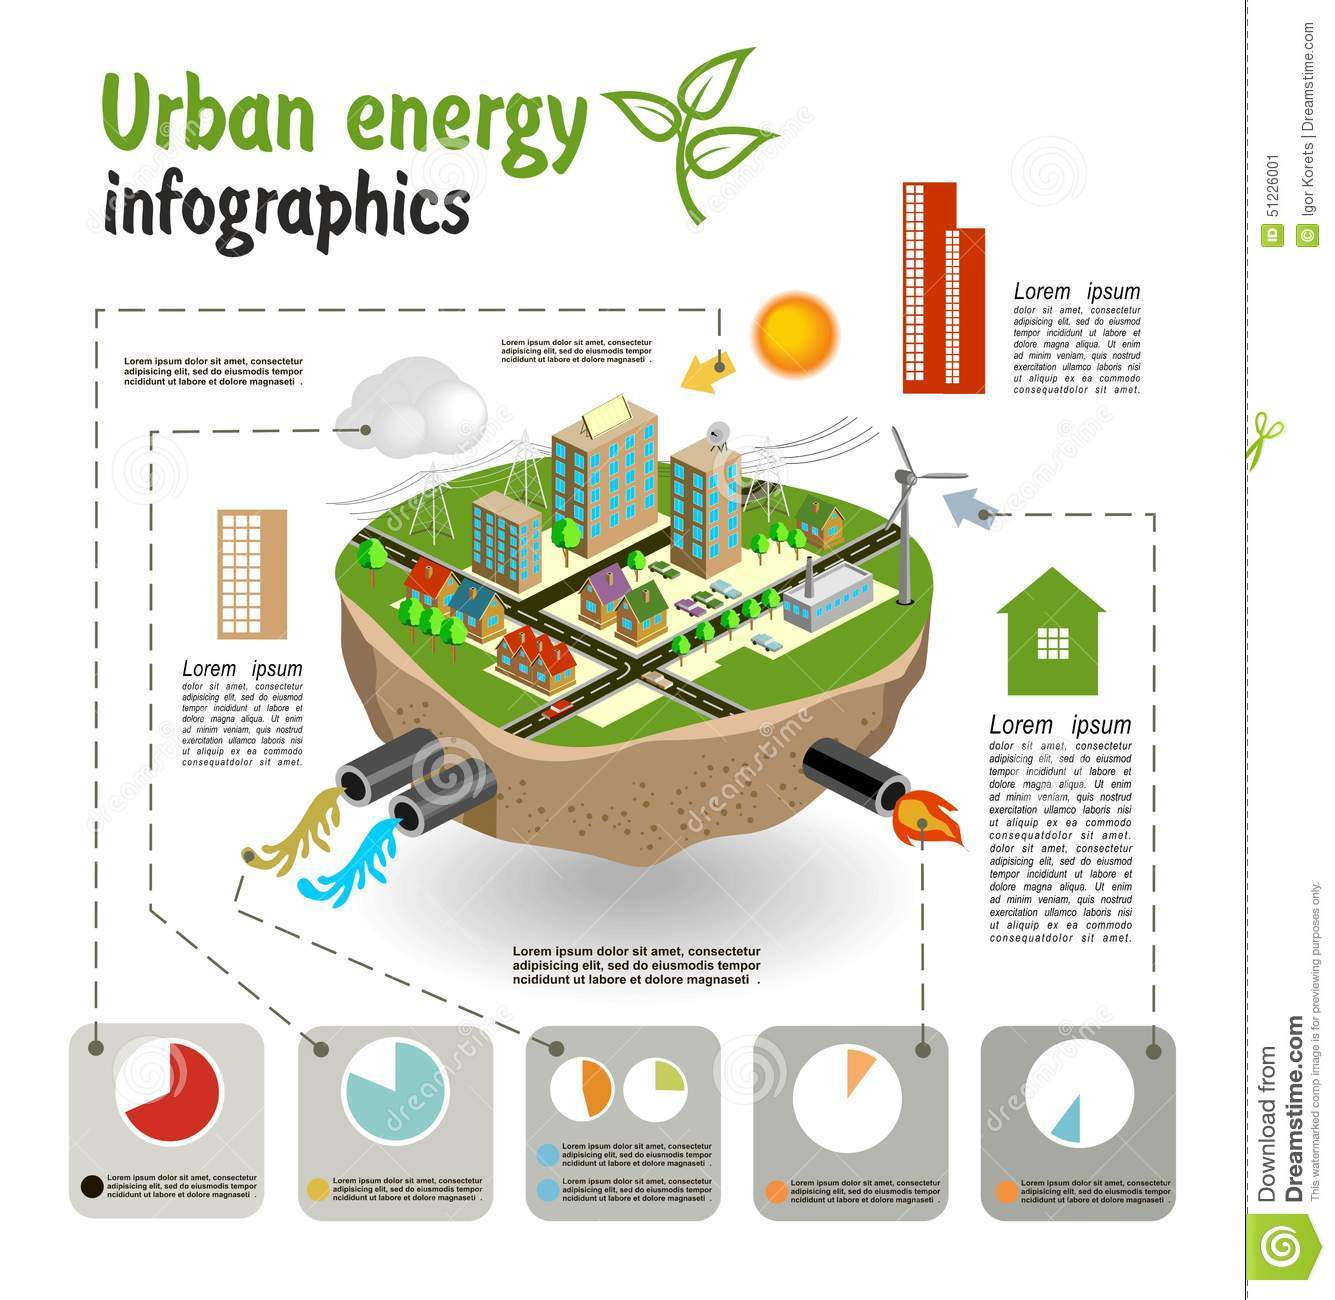 Electric Circuit Concept Map Everything About Wiring Diagram Electriccircuitprojectideas Science Project Urban Energy Infographics Template Stock Photo Image Kit Nuclear Reactor